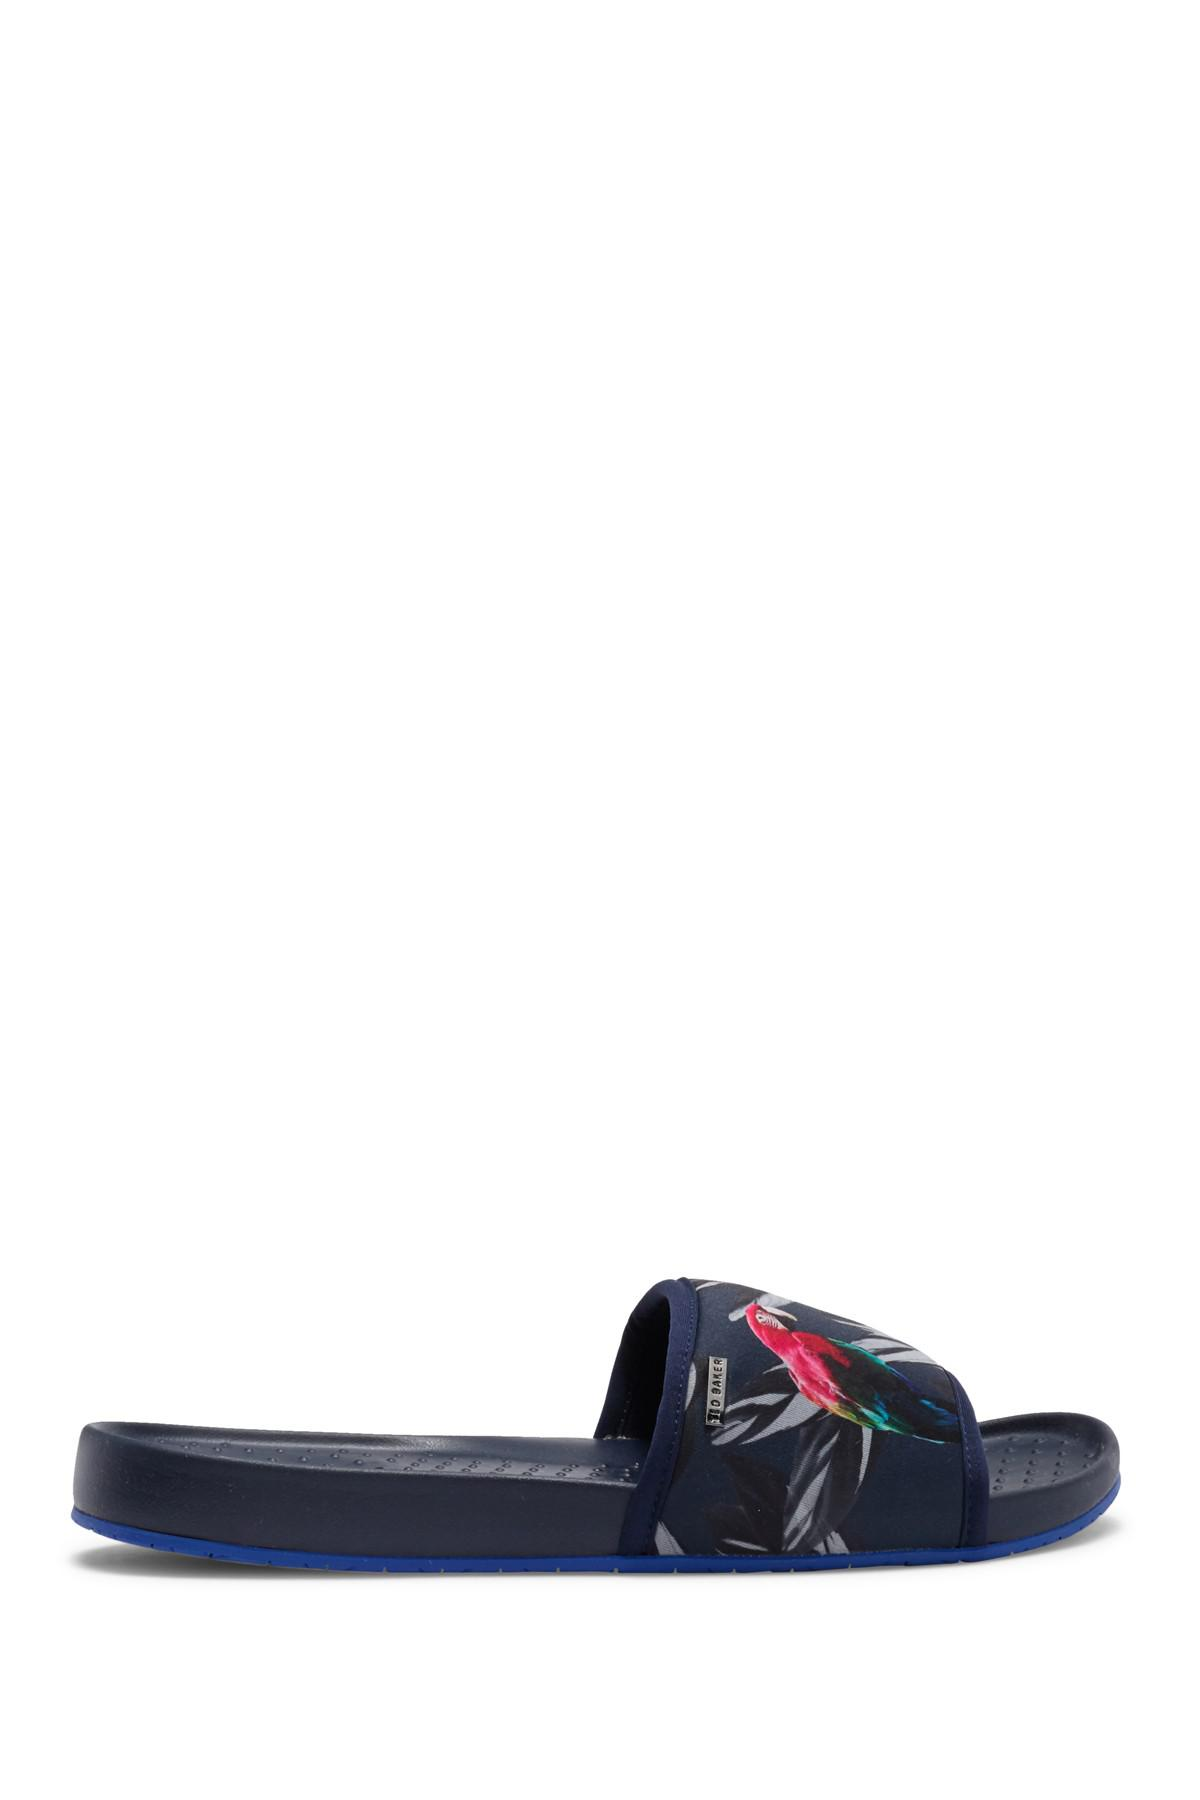 aacb112f2c2e9 Ted Baker - Blue Sauldi Slide Sandal for Men - Lyst. View fullscreen